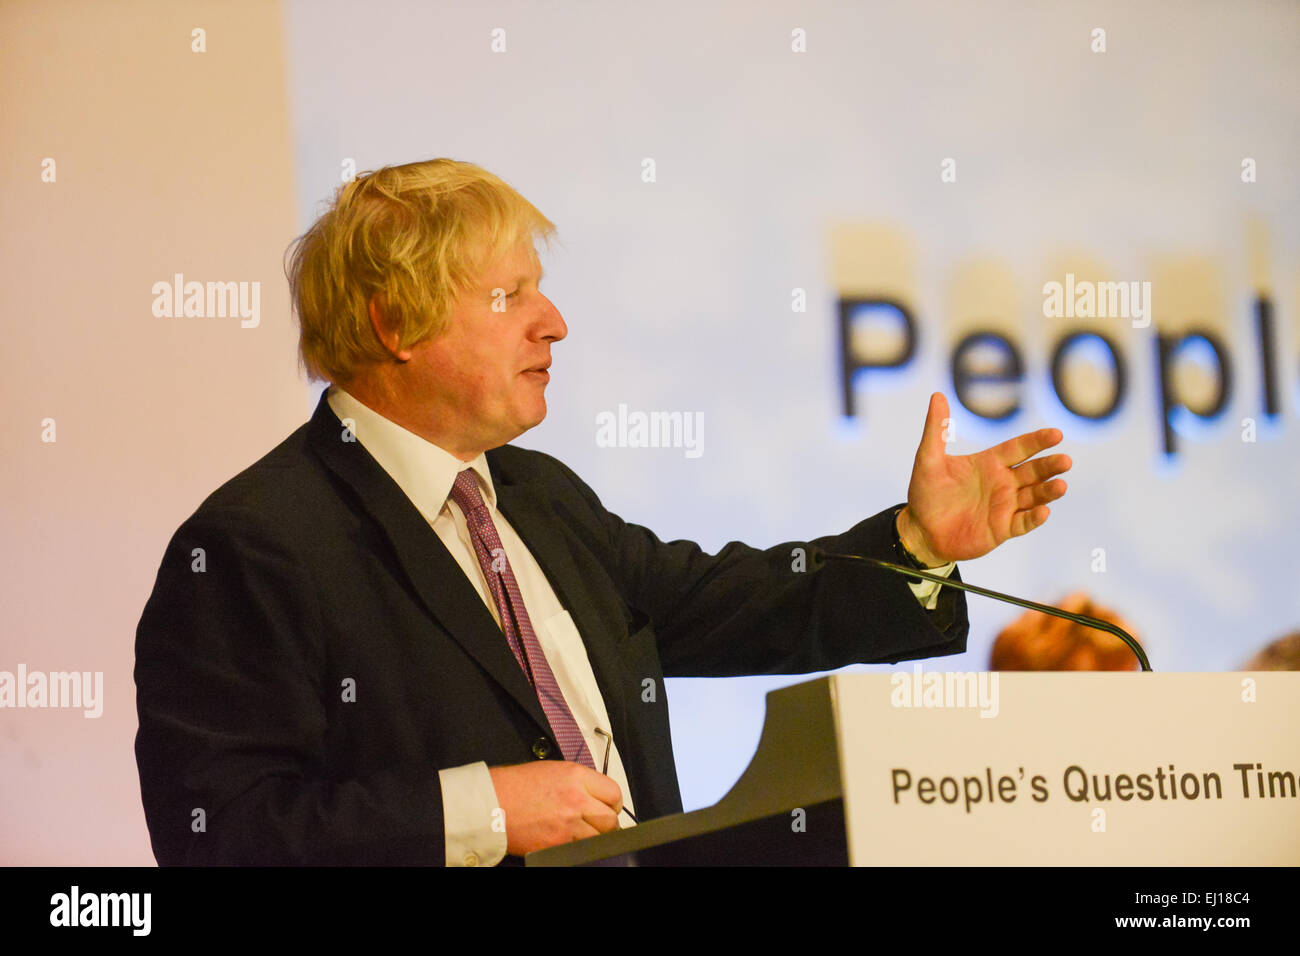 Wood Green, Haringey, London, UK. 19th March 2015. London Mayor Boris Johnson and the London Assembly take part - Stock Image